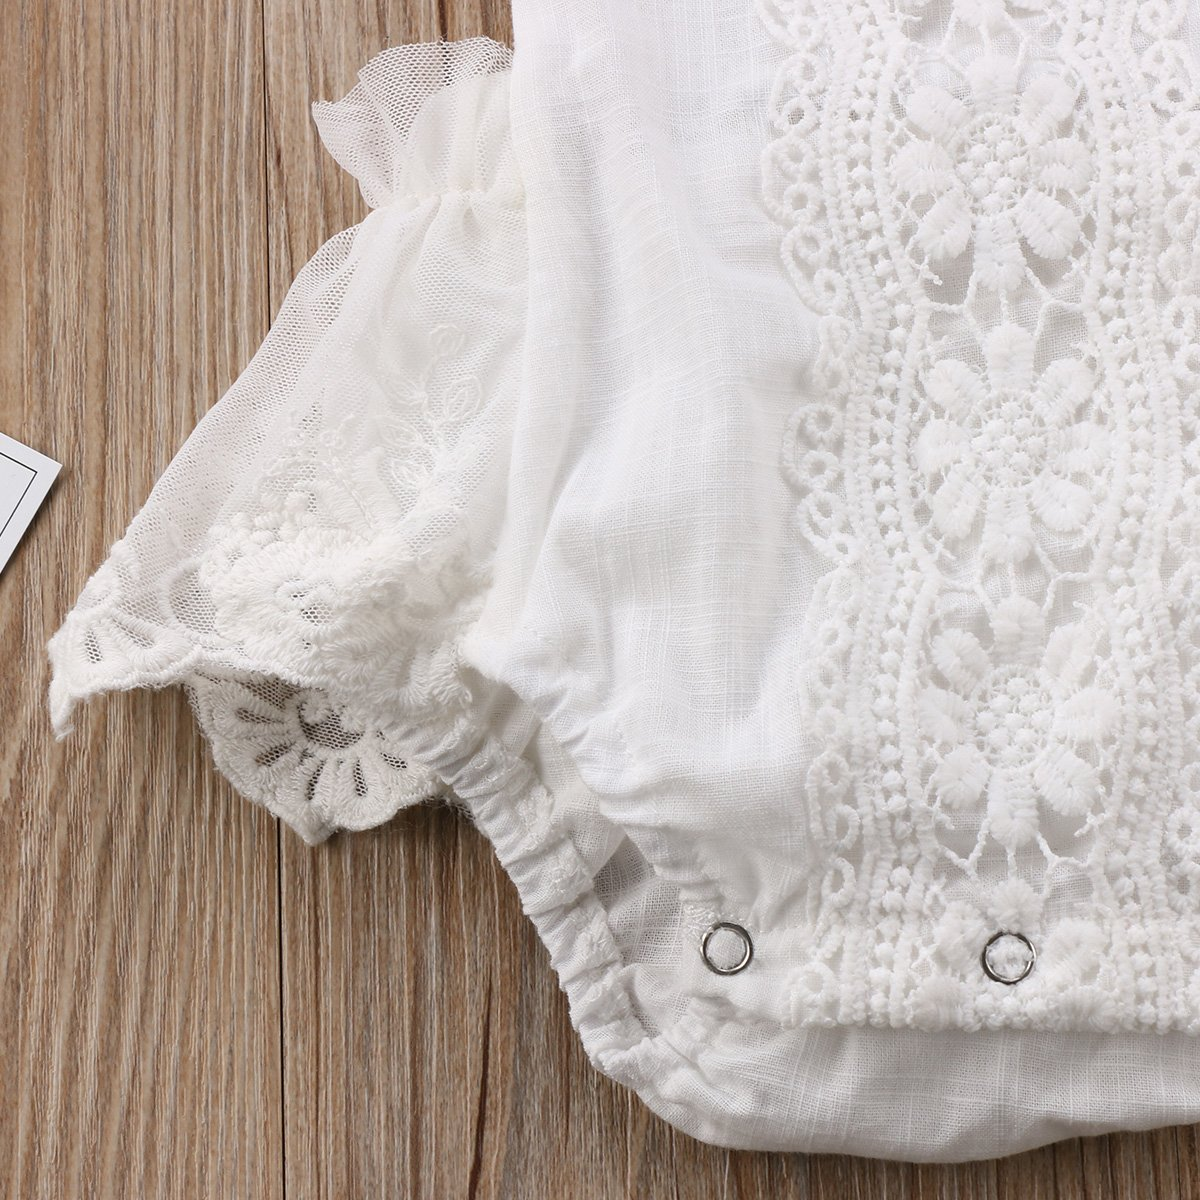 Baby Girl Lace White Embroidered Romper Infant Backless Ruffle Outfit Clothing